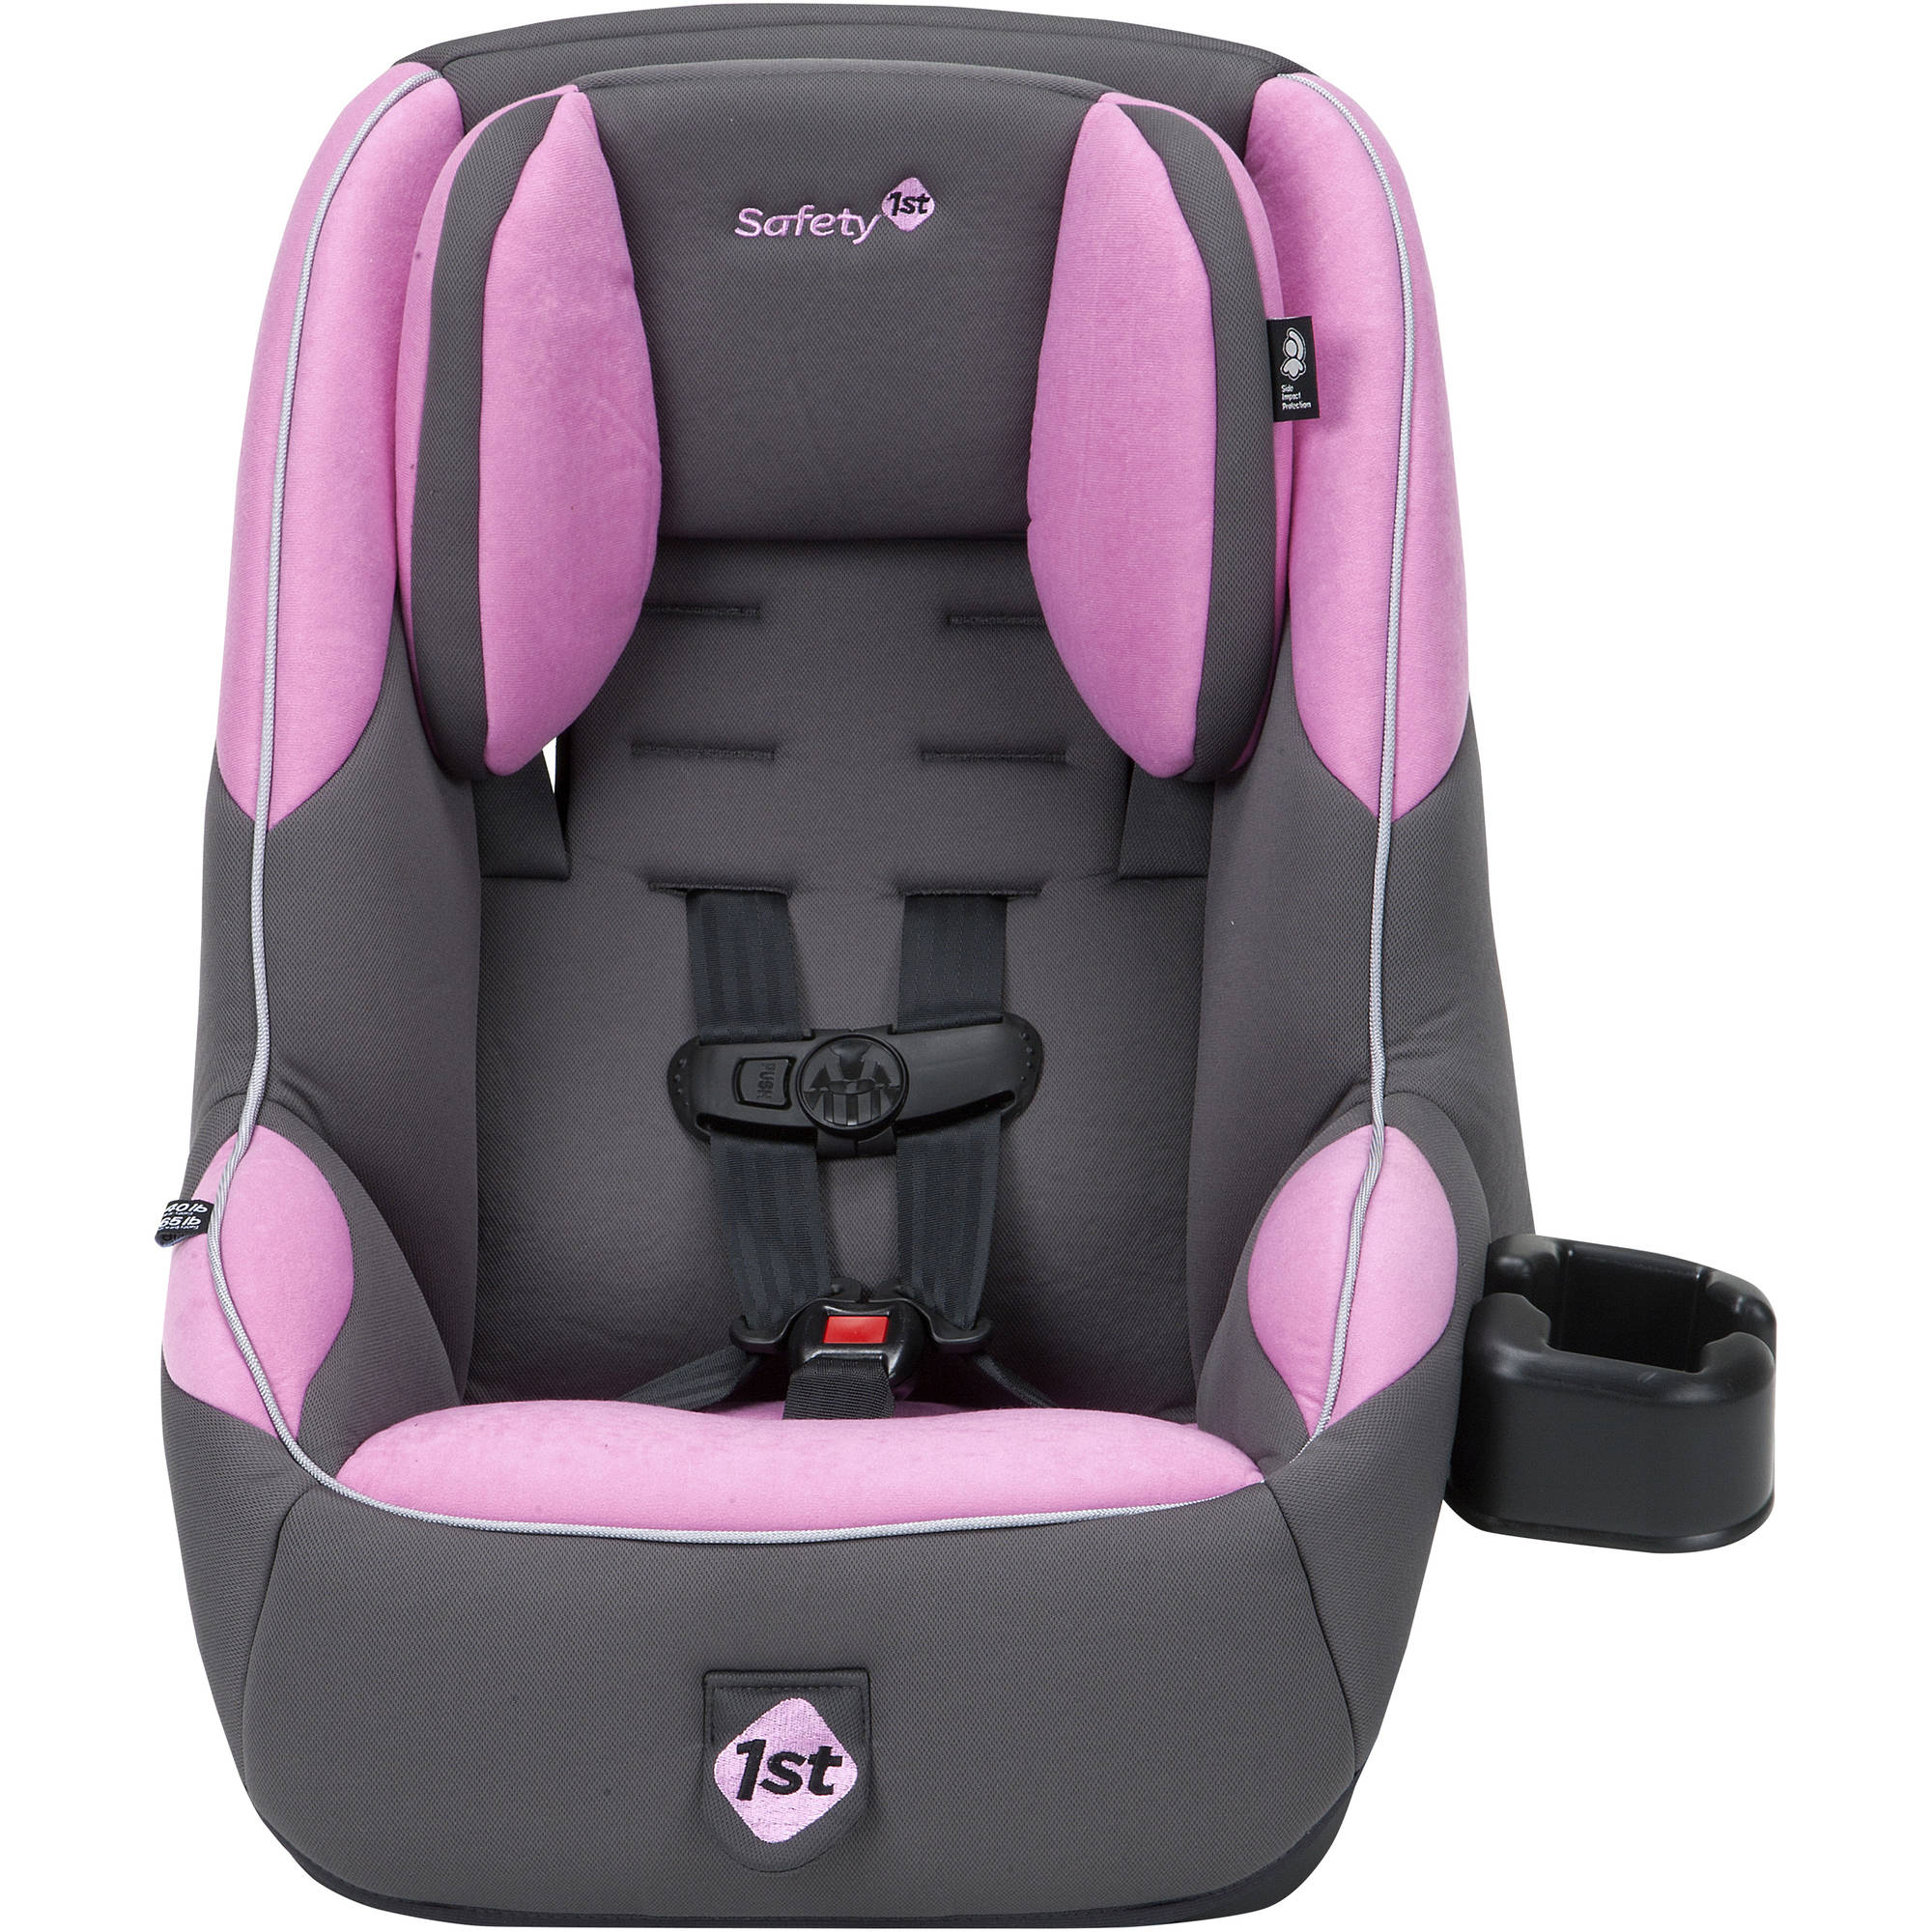 Safety 1st Guide 65 Sport Convertible Car Seat, Choose Your Color | eBay